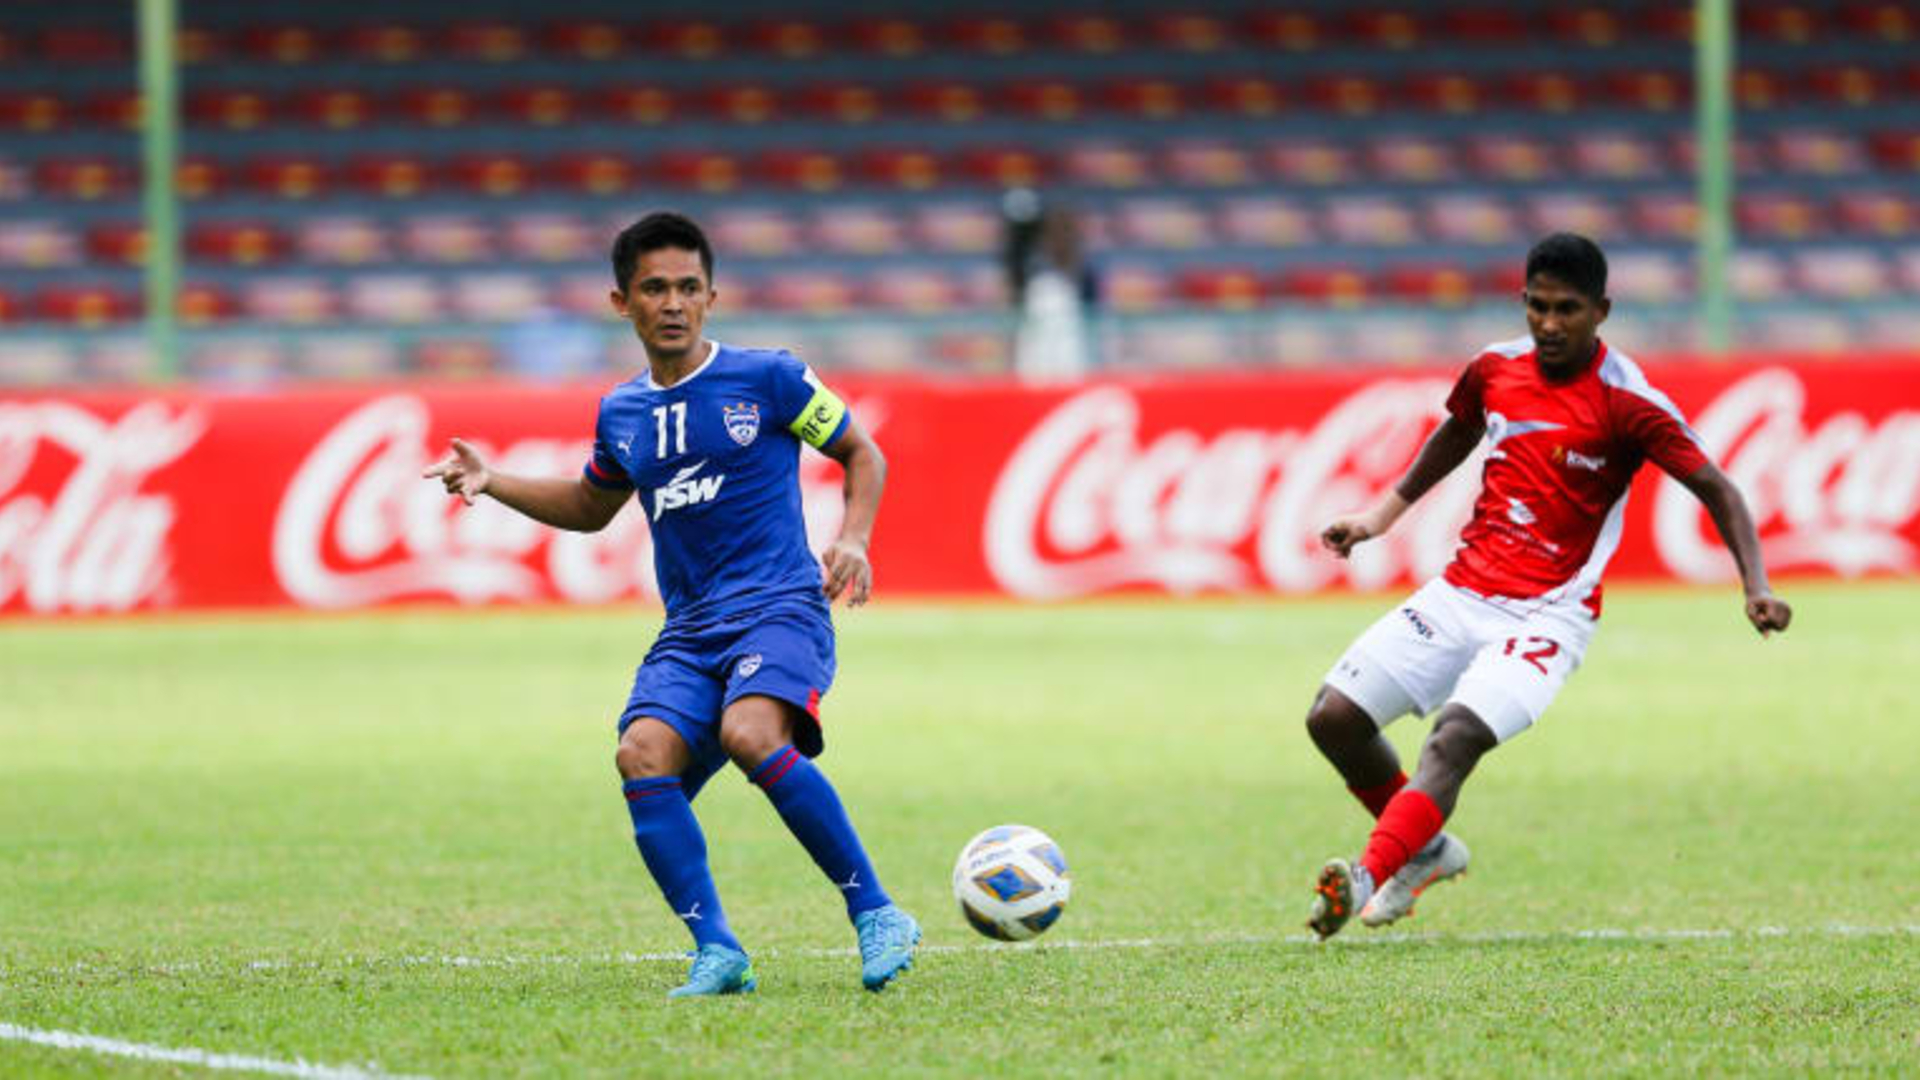 AFC Cup 2021: Bengaluru FC crash out, how can ATK Mohun Bagan qualify for the next round?